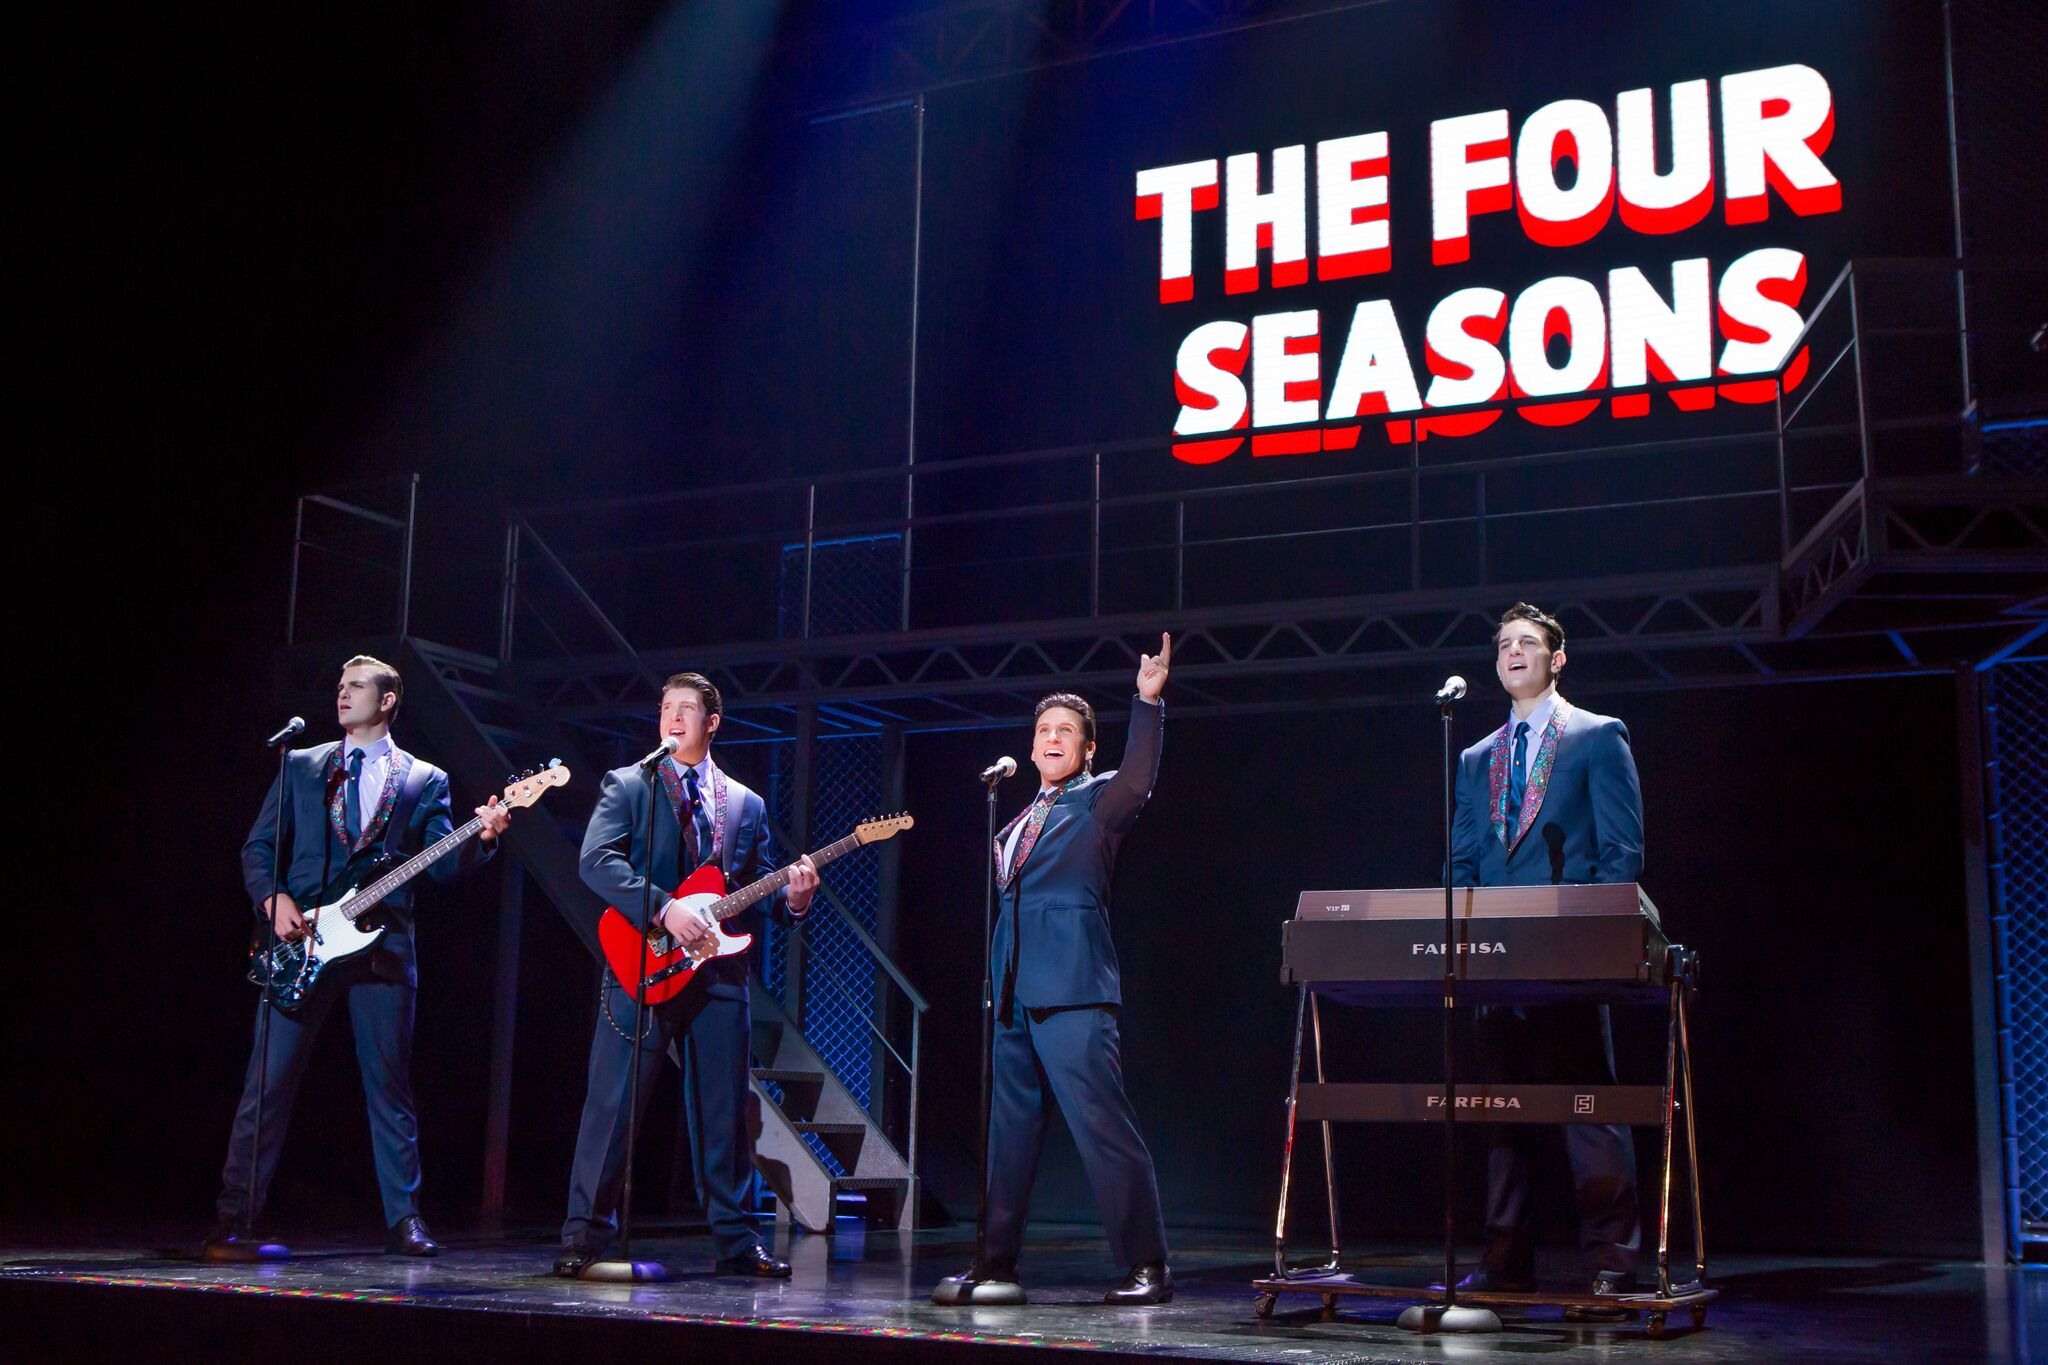 Jersey Boys plays Starlight Theatre, June 27-July 2